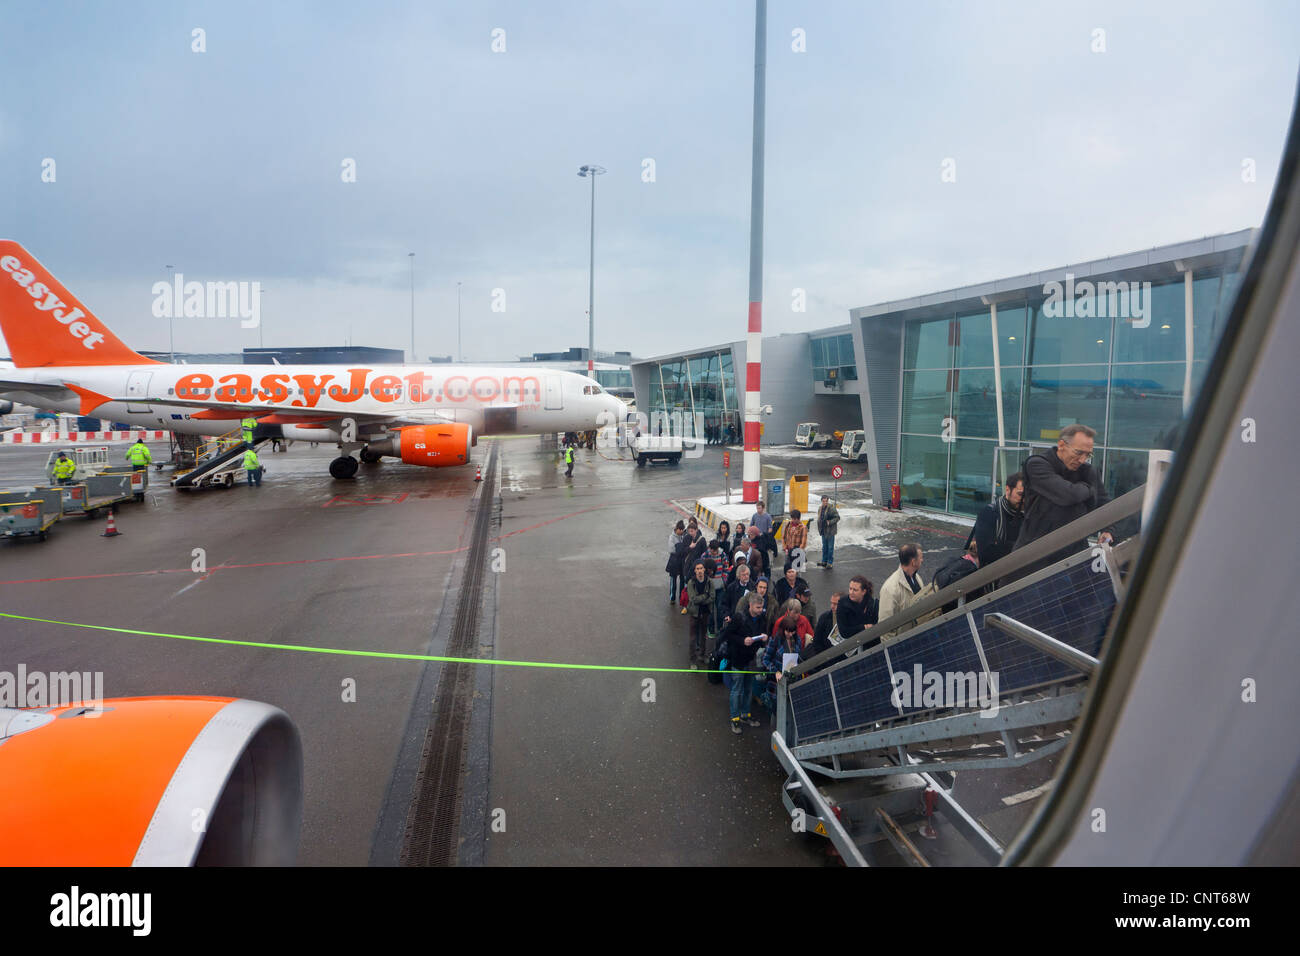 http://c7.alamy.com/comp/CNT68W/amsterdam-schiphol-airport-people-boarding-easyjet-plane-airplane-CNT68W.jpg